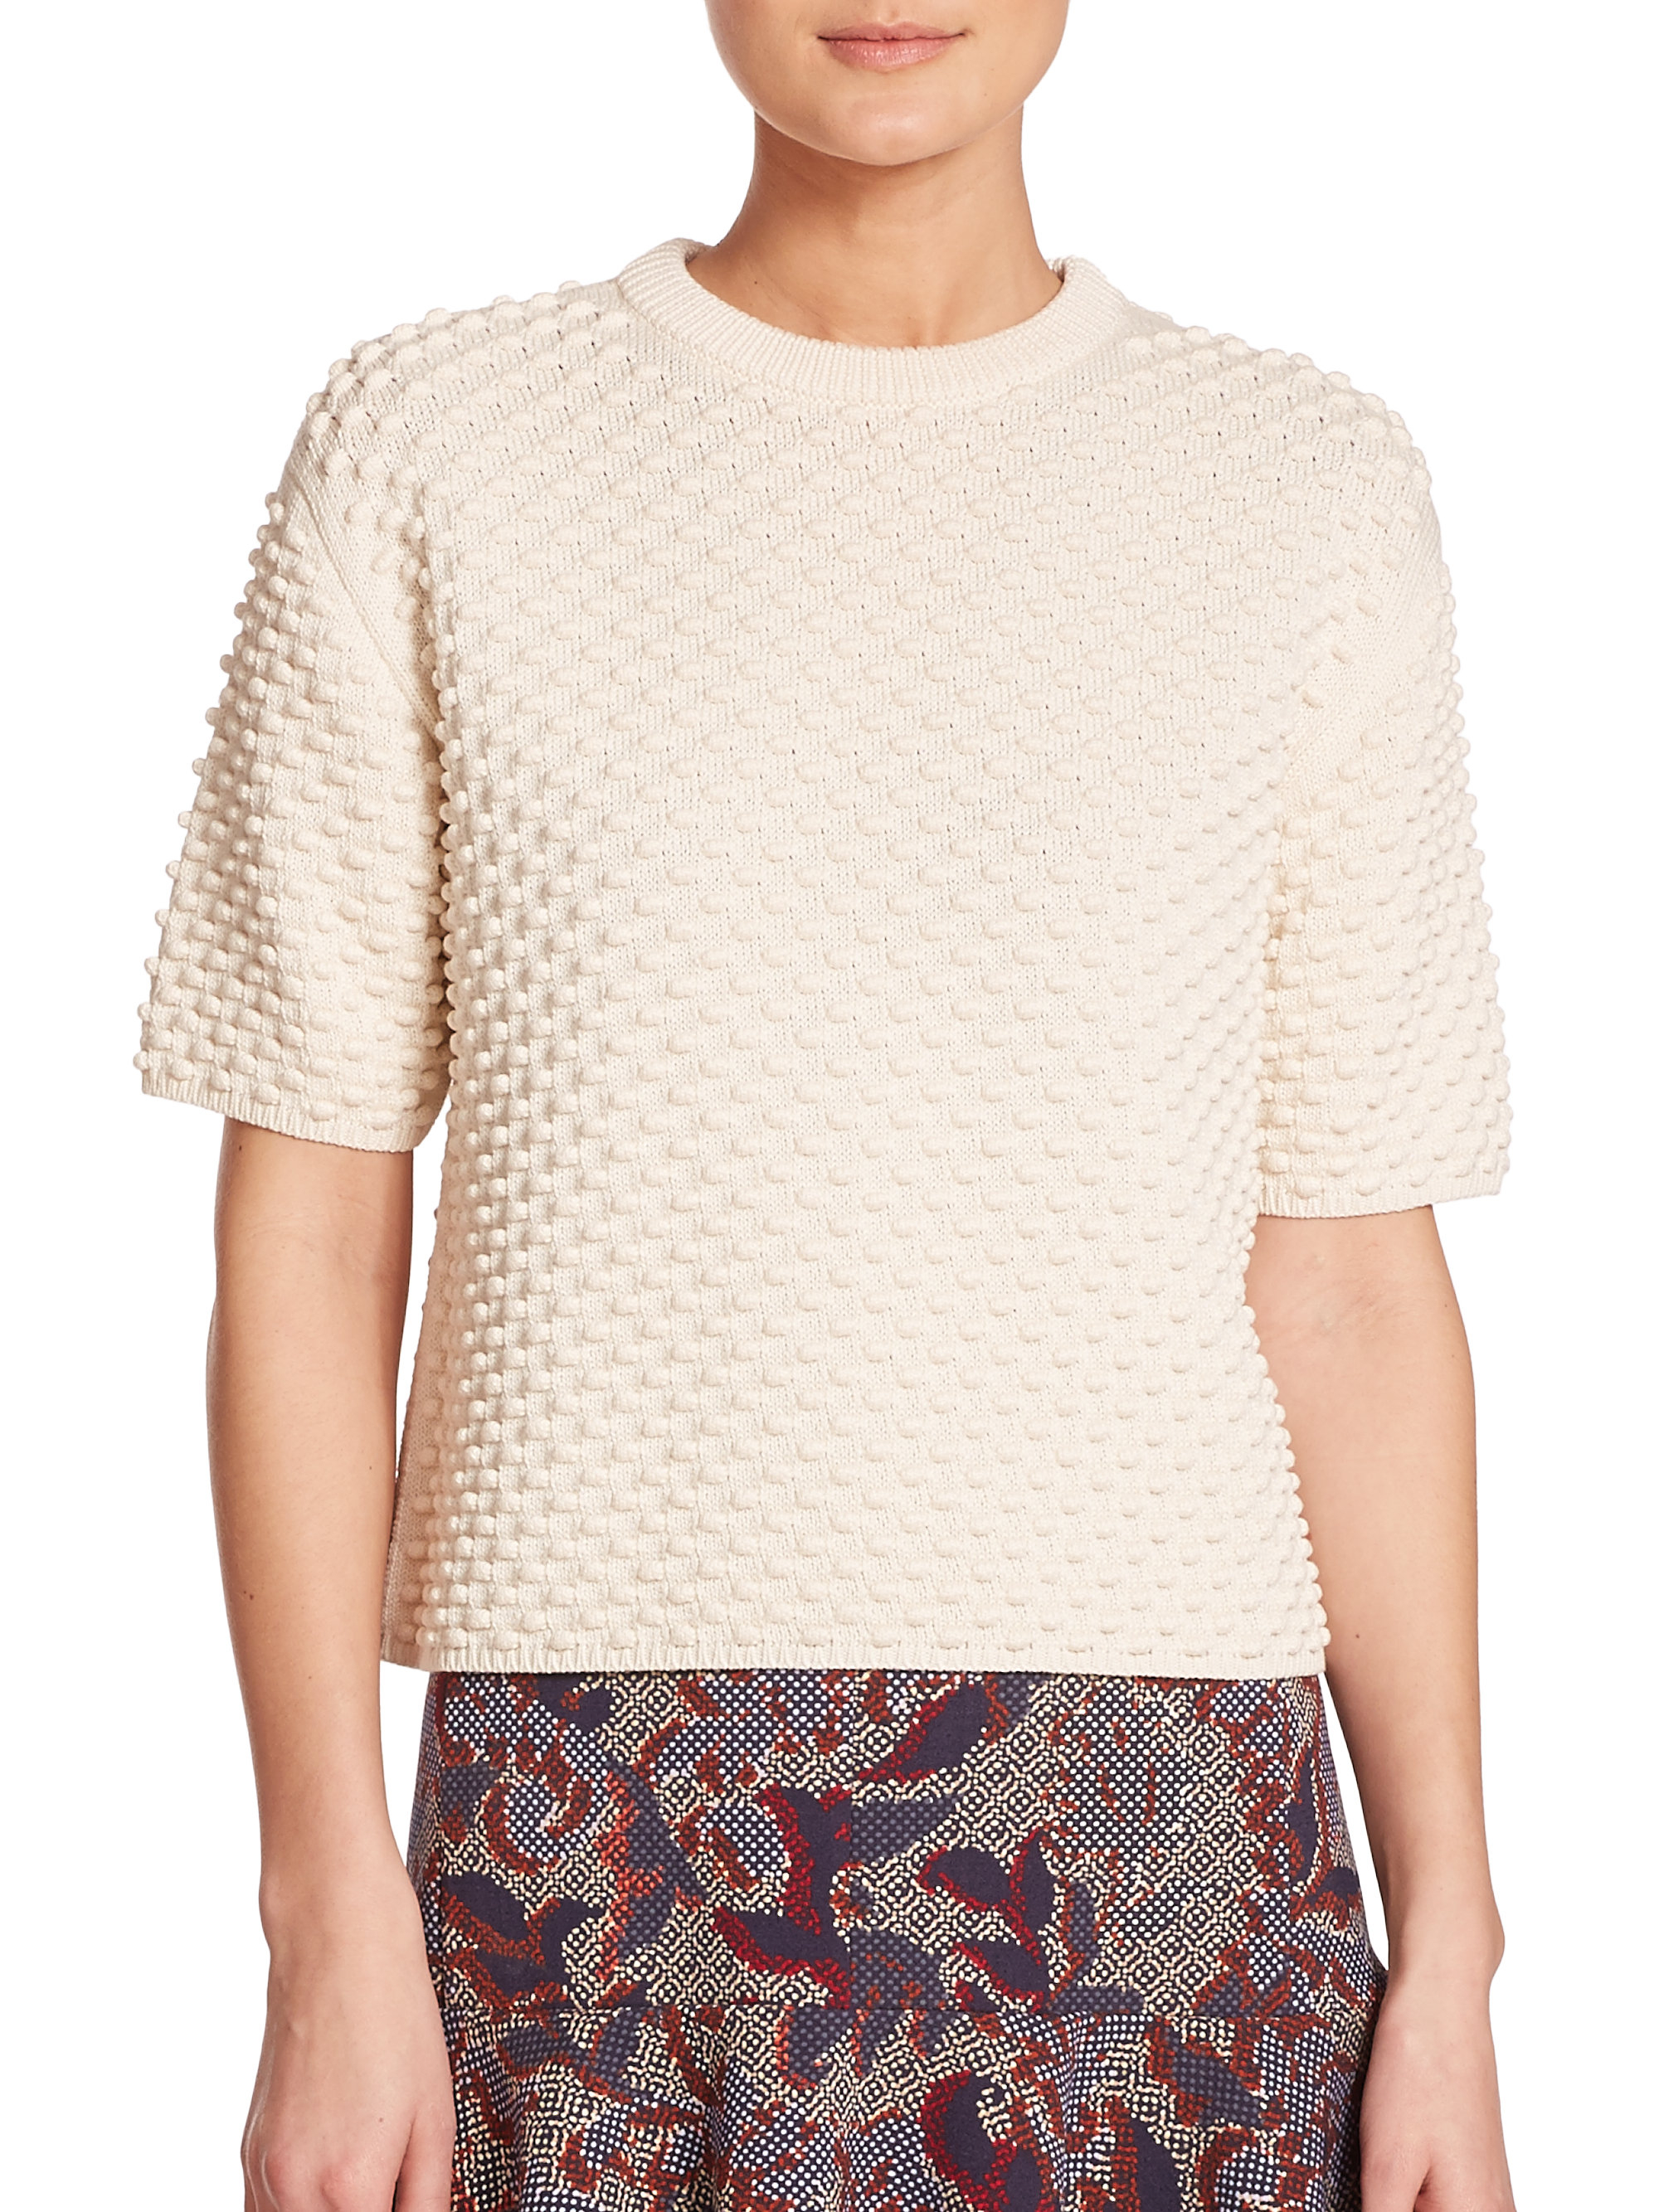 Tory burch Popcorn Stitch Short-sleeve Sweater in White | Lyst